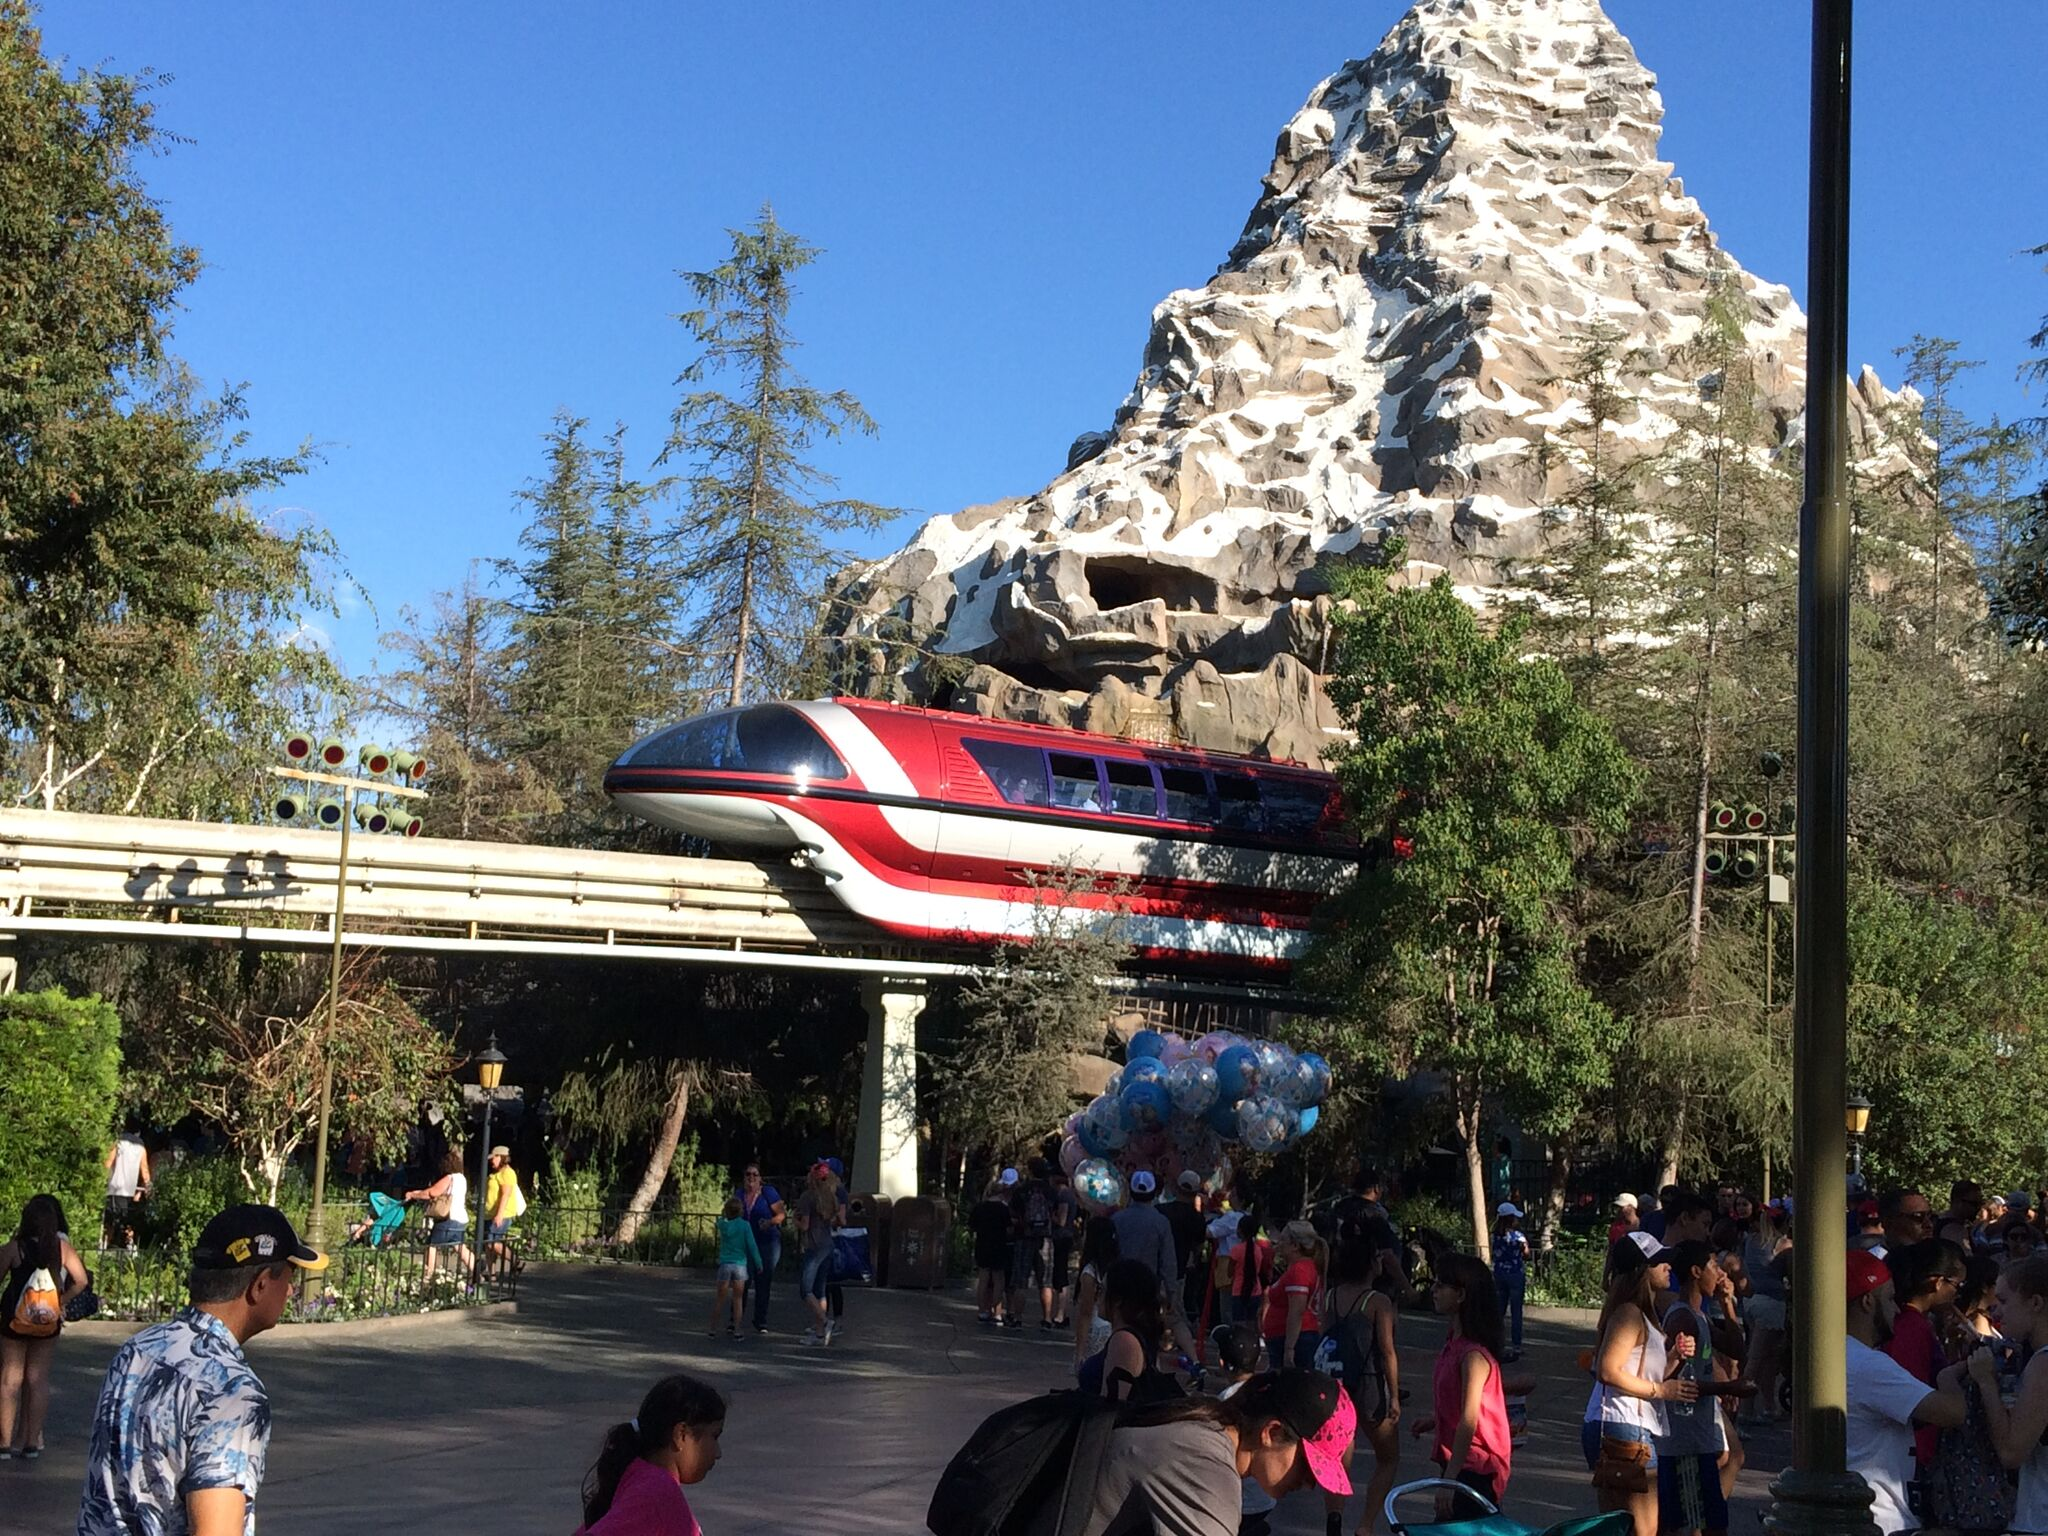 All the disneyland rides in detail with height requirements, seating arrangements,. Disneyland Vs Disney World The Matterhorn Bobsleds And Expedition Everest Touringplans Com Blog